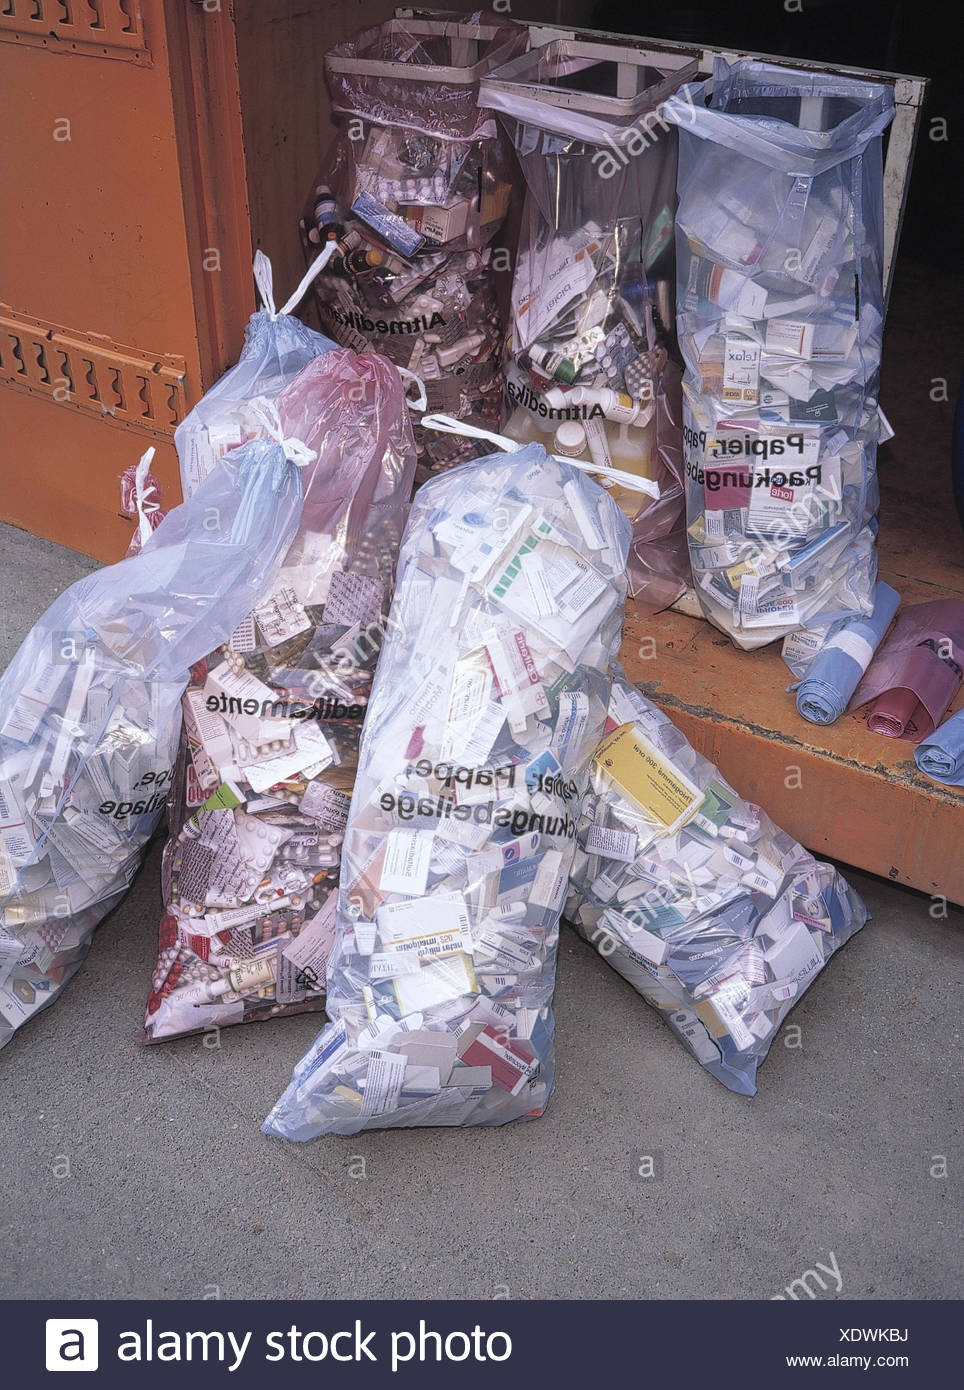 Hazardous wastes, bags, Old drugs, problem garbage, envelopes, instructions, garbage separation, environmental discharge, environment protection, recycling - Stock Image